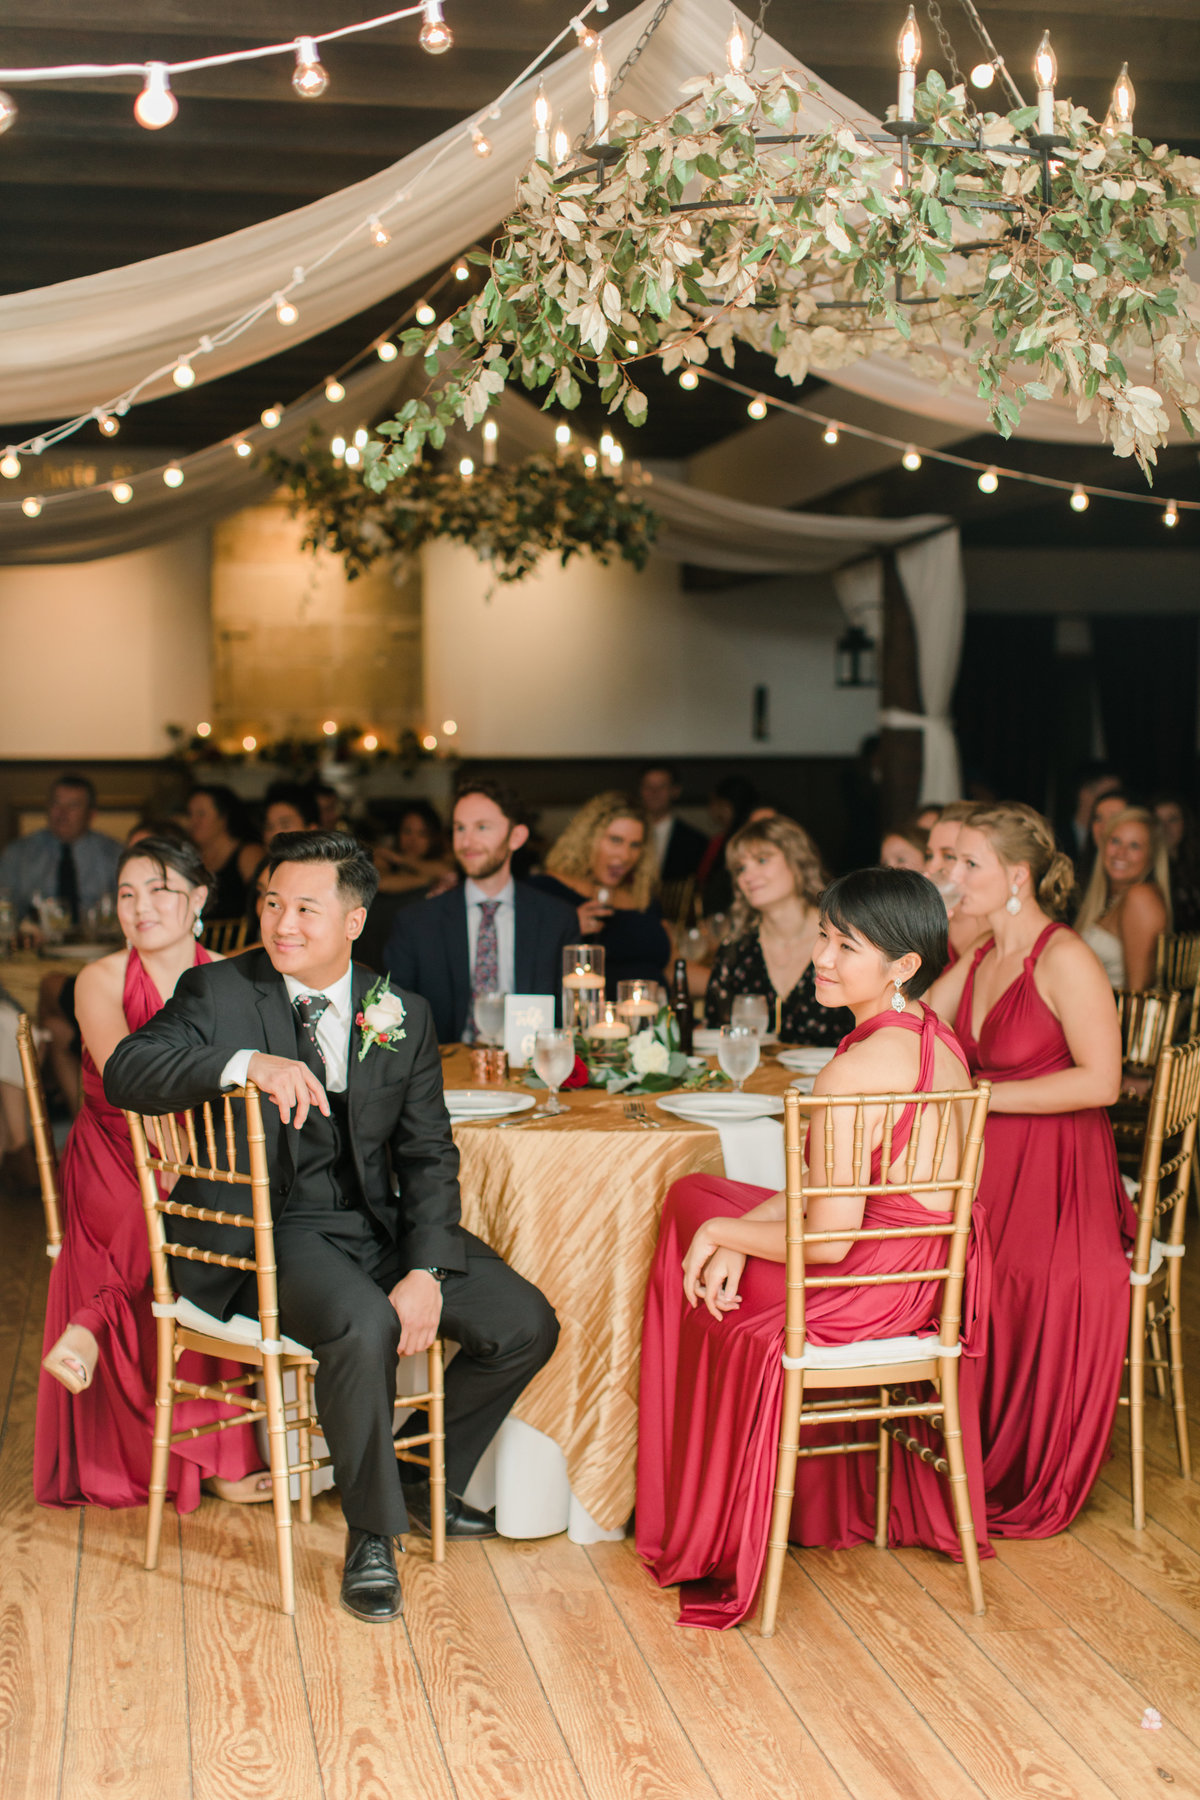 Williamsburg_Winery_Fall_Wedding_Virginia_DC_Photographer_Angelika_Johns_Photography-0332